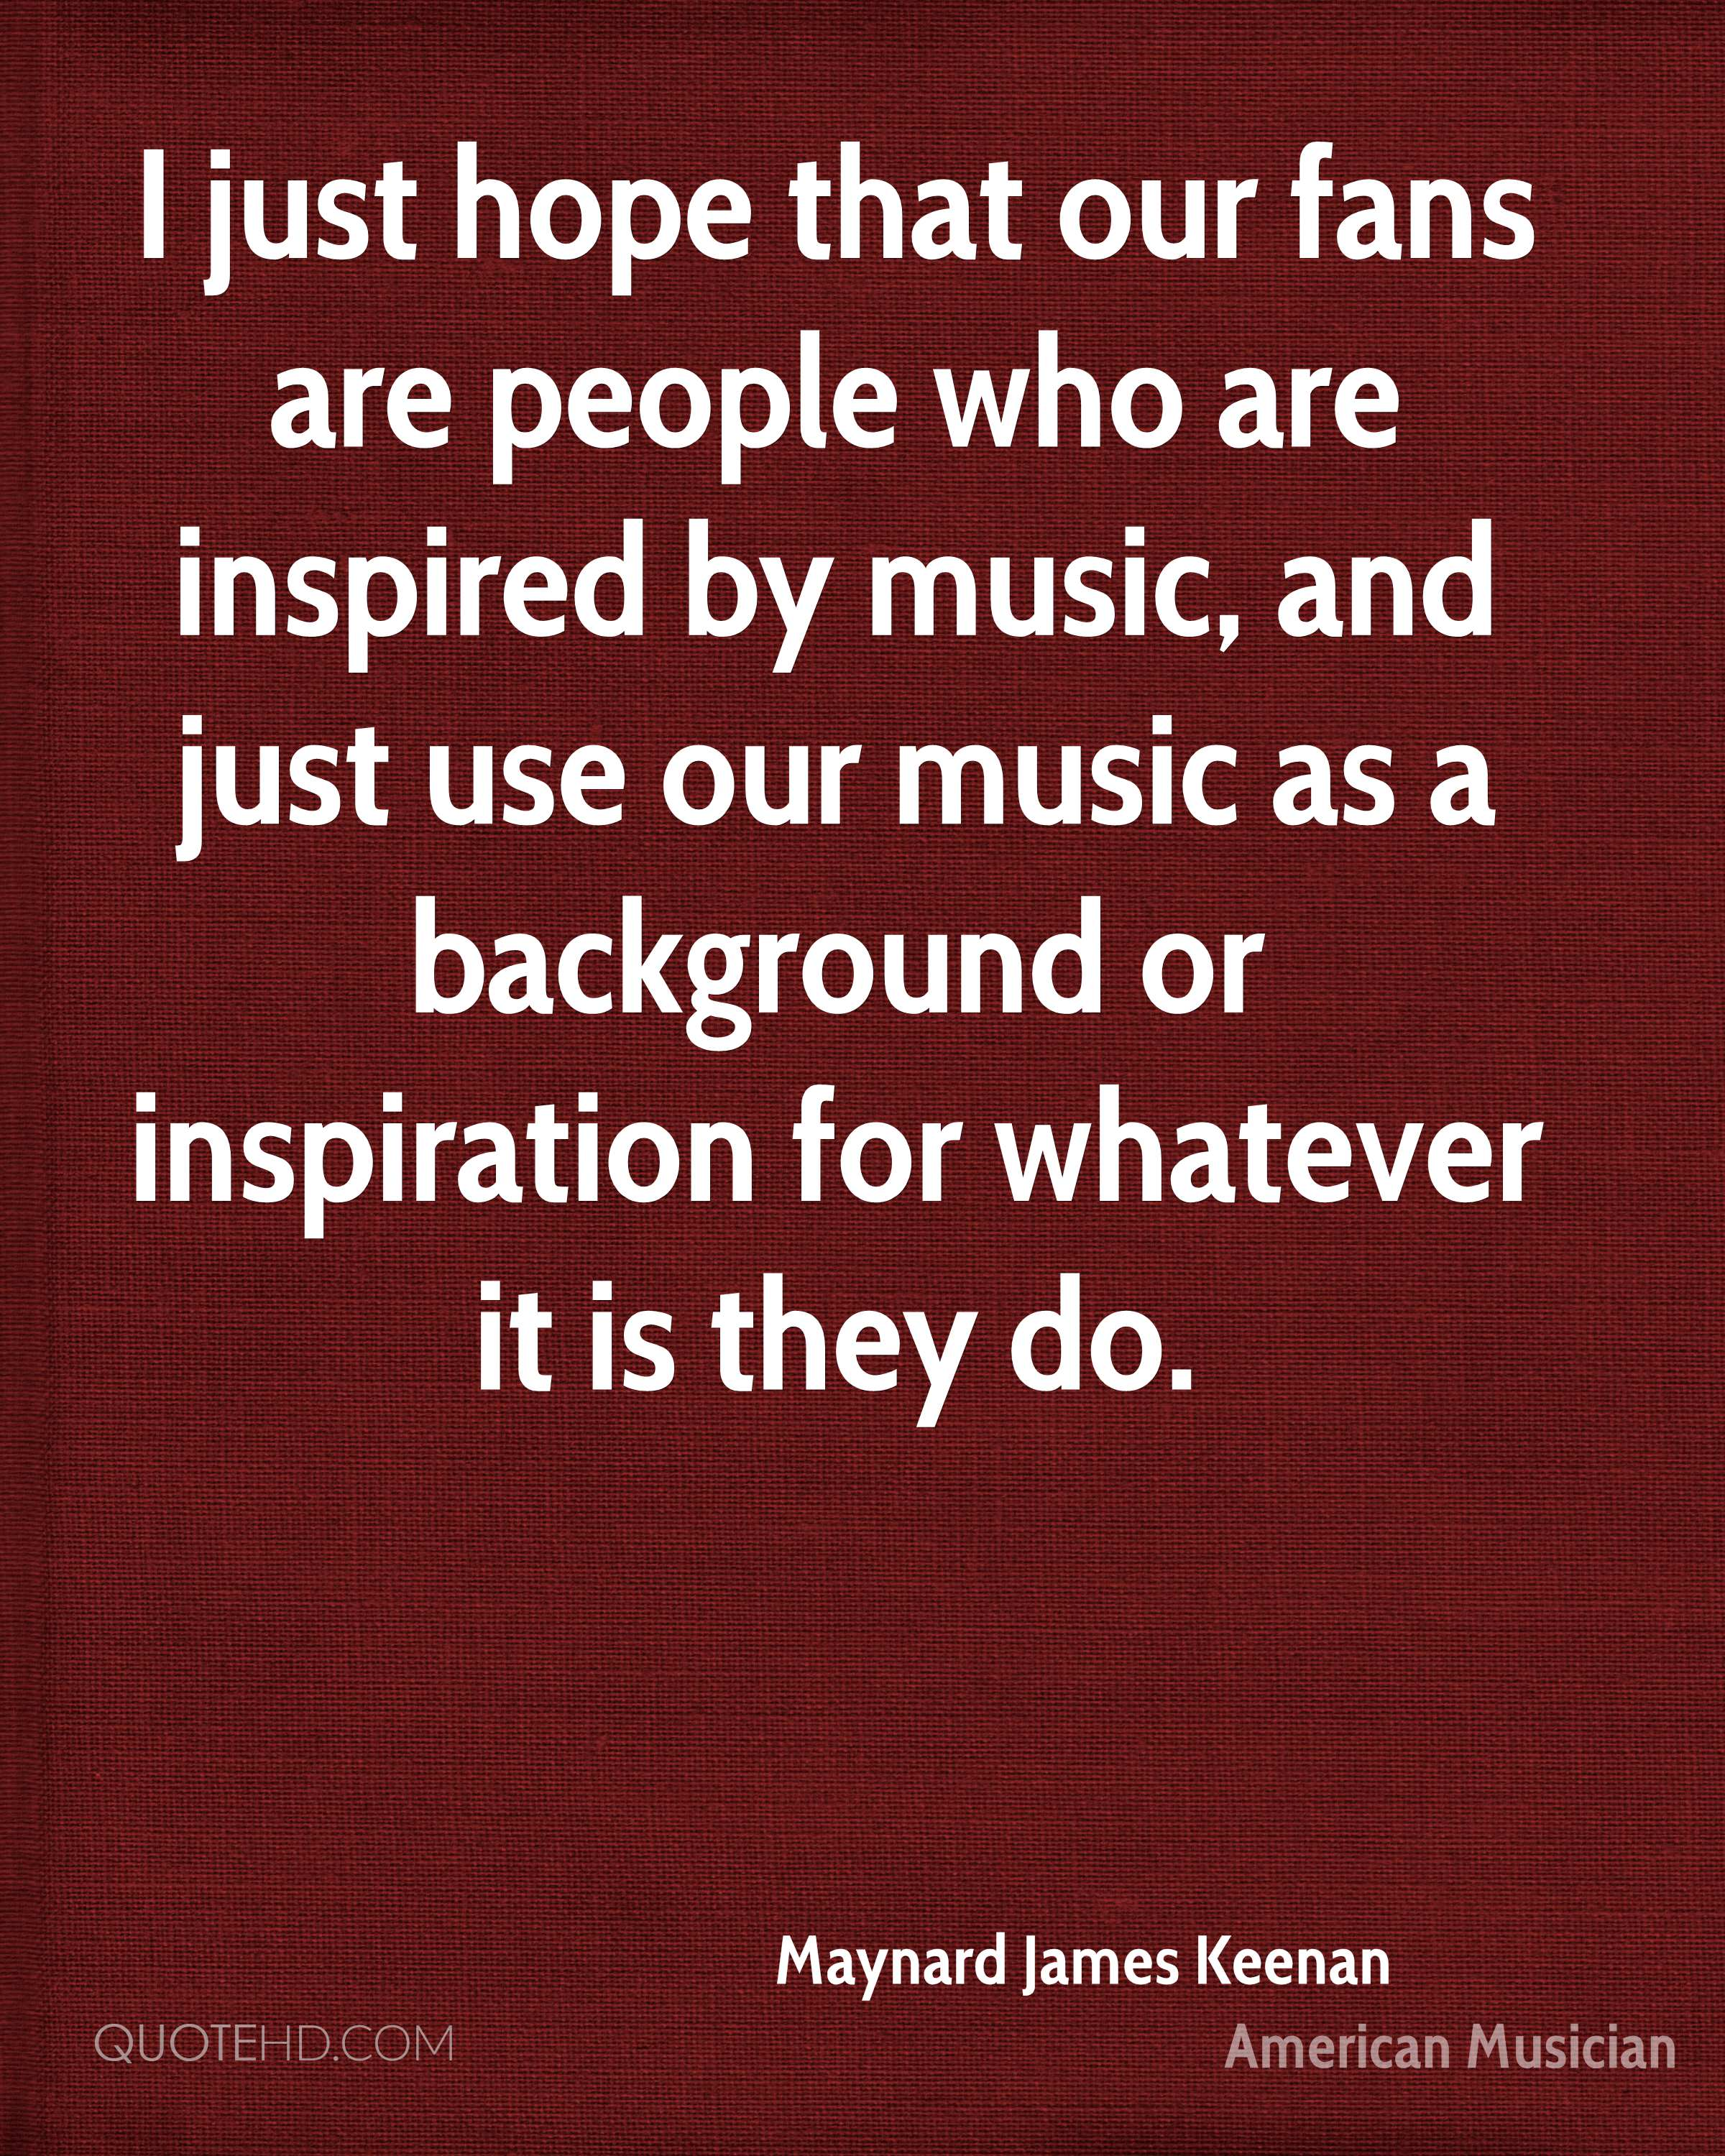 I just hope that our fans are people who are inspired by music, and just use our music as a background or inspiration for whatever it is they do.